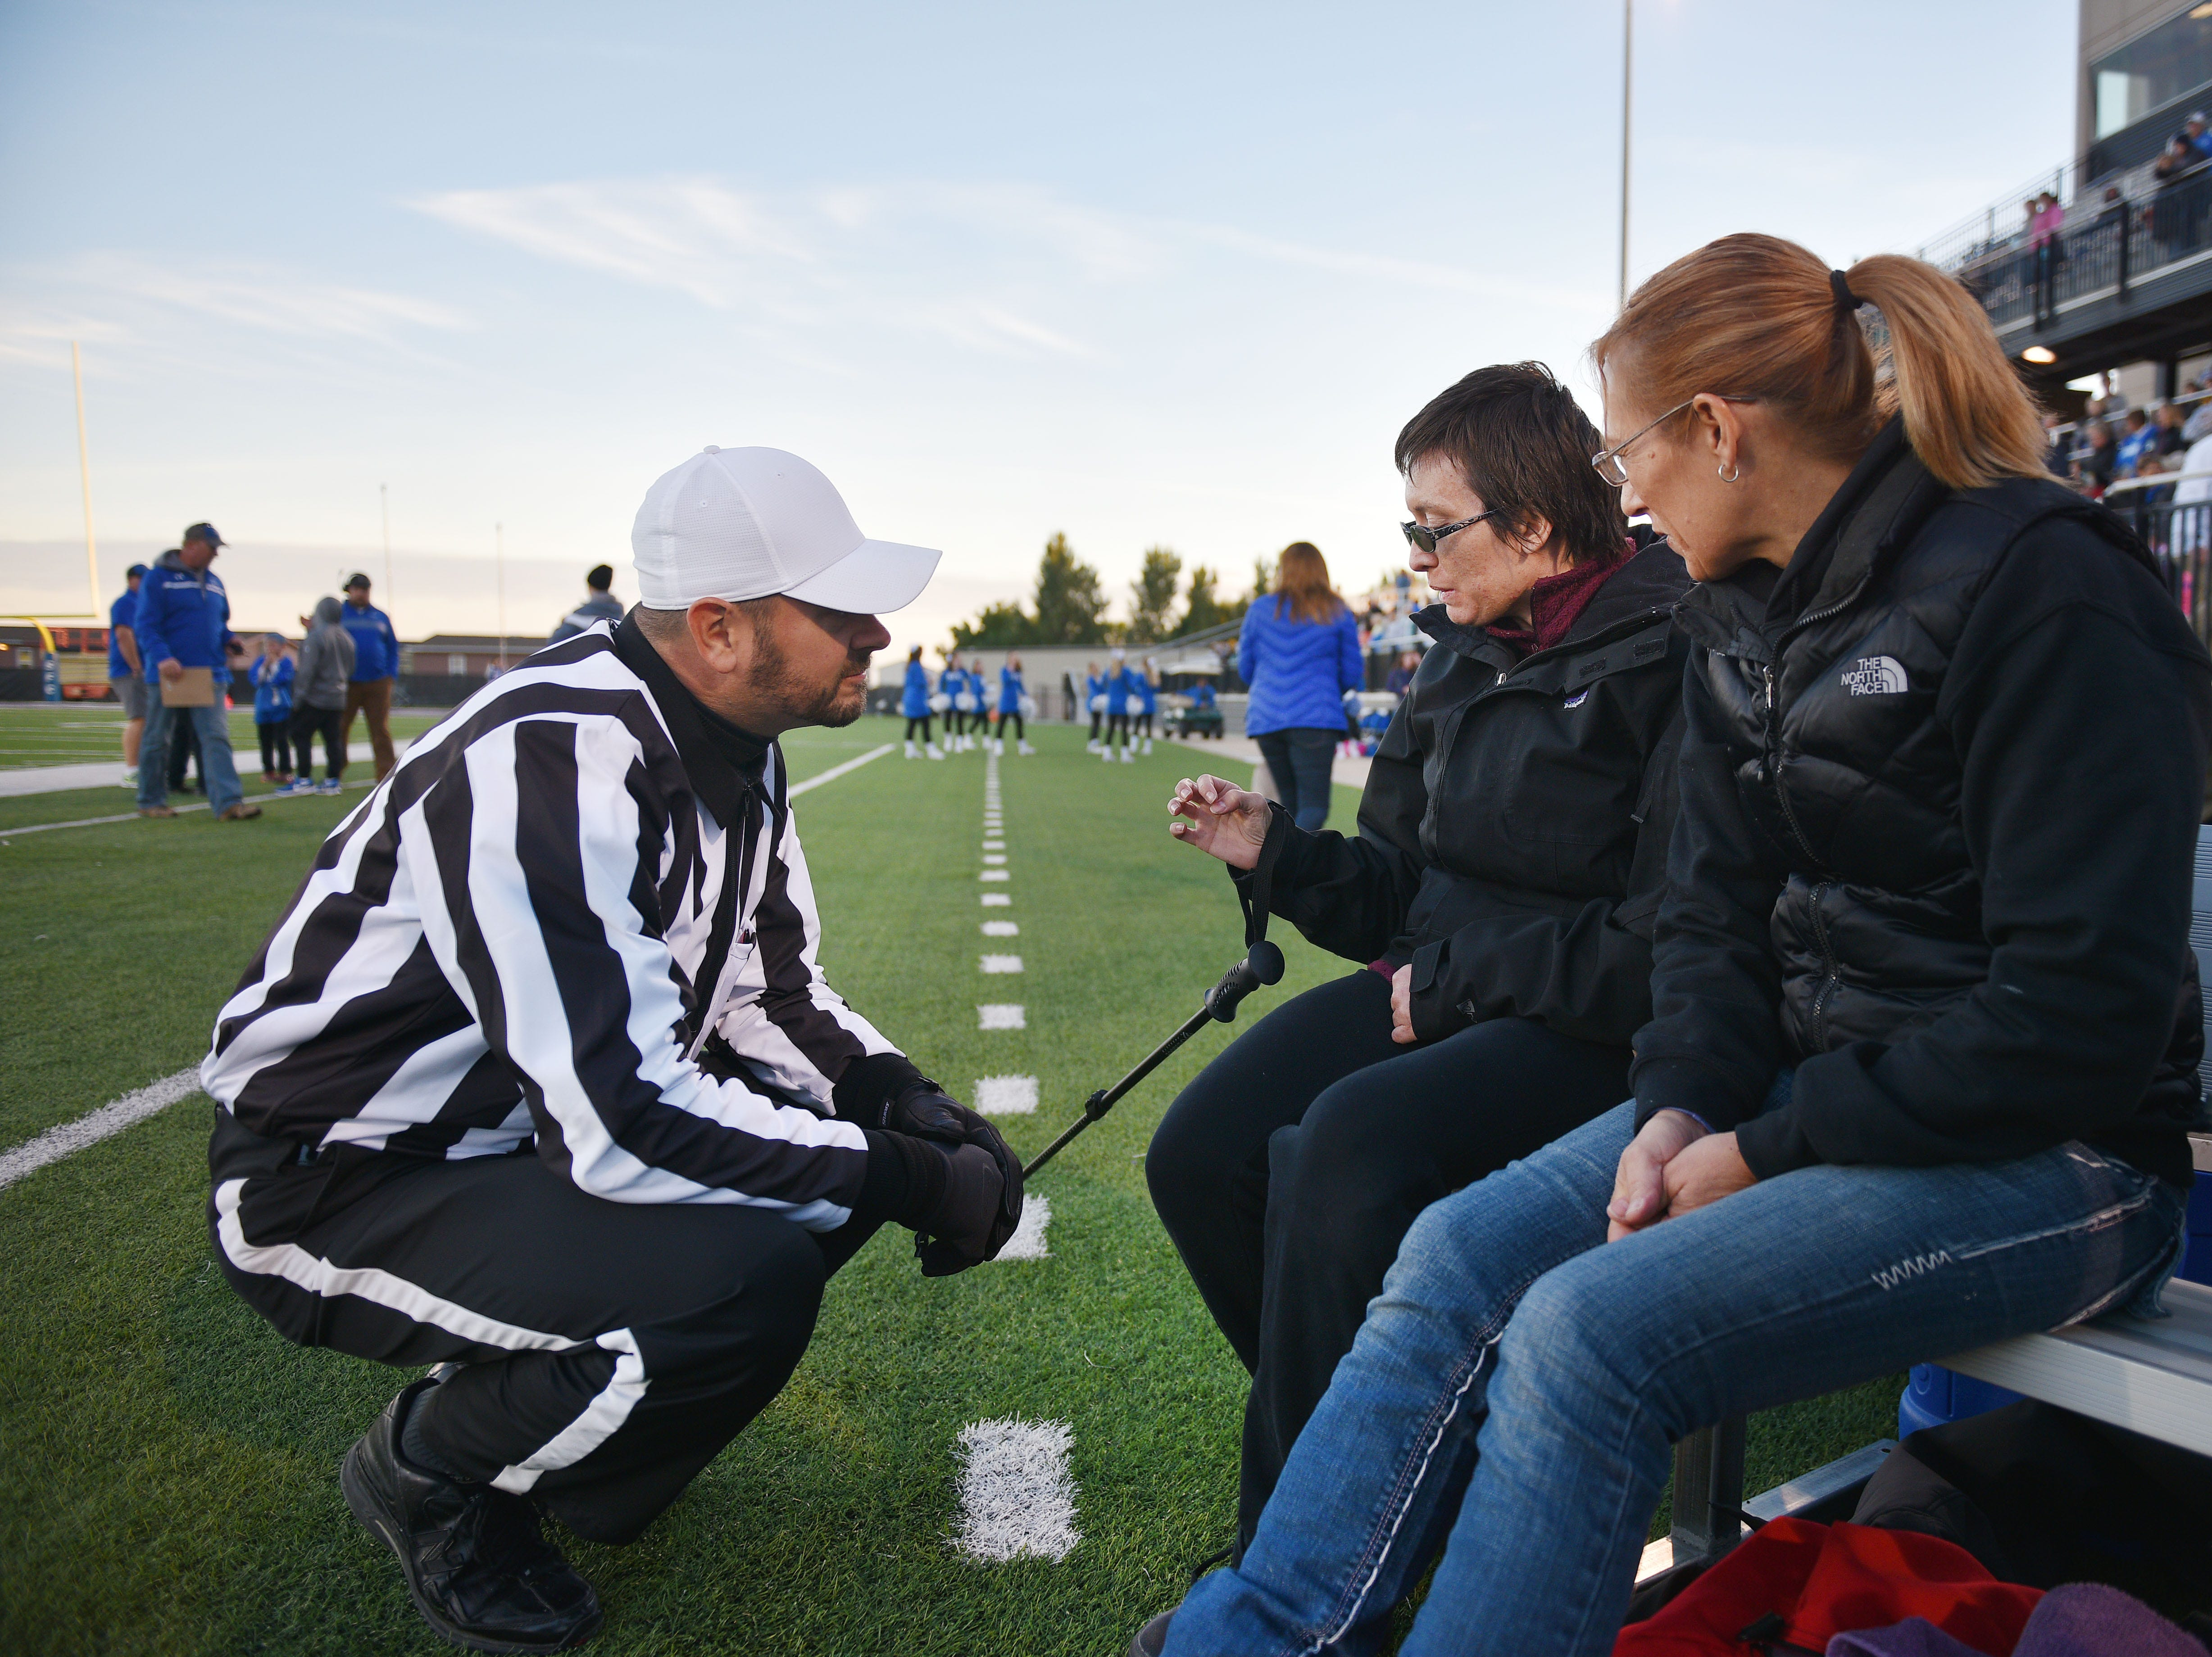 Referee Micheal Fuller gives Ashley Van Hemert instructions for the coin toss before the Sioux Falls Christian game, Friday Sept. 28, at Bob Young Field University Of Sioux Falls Stadium.